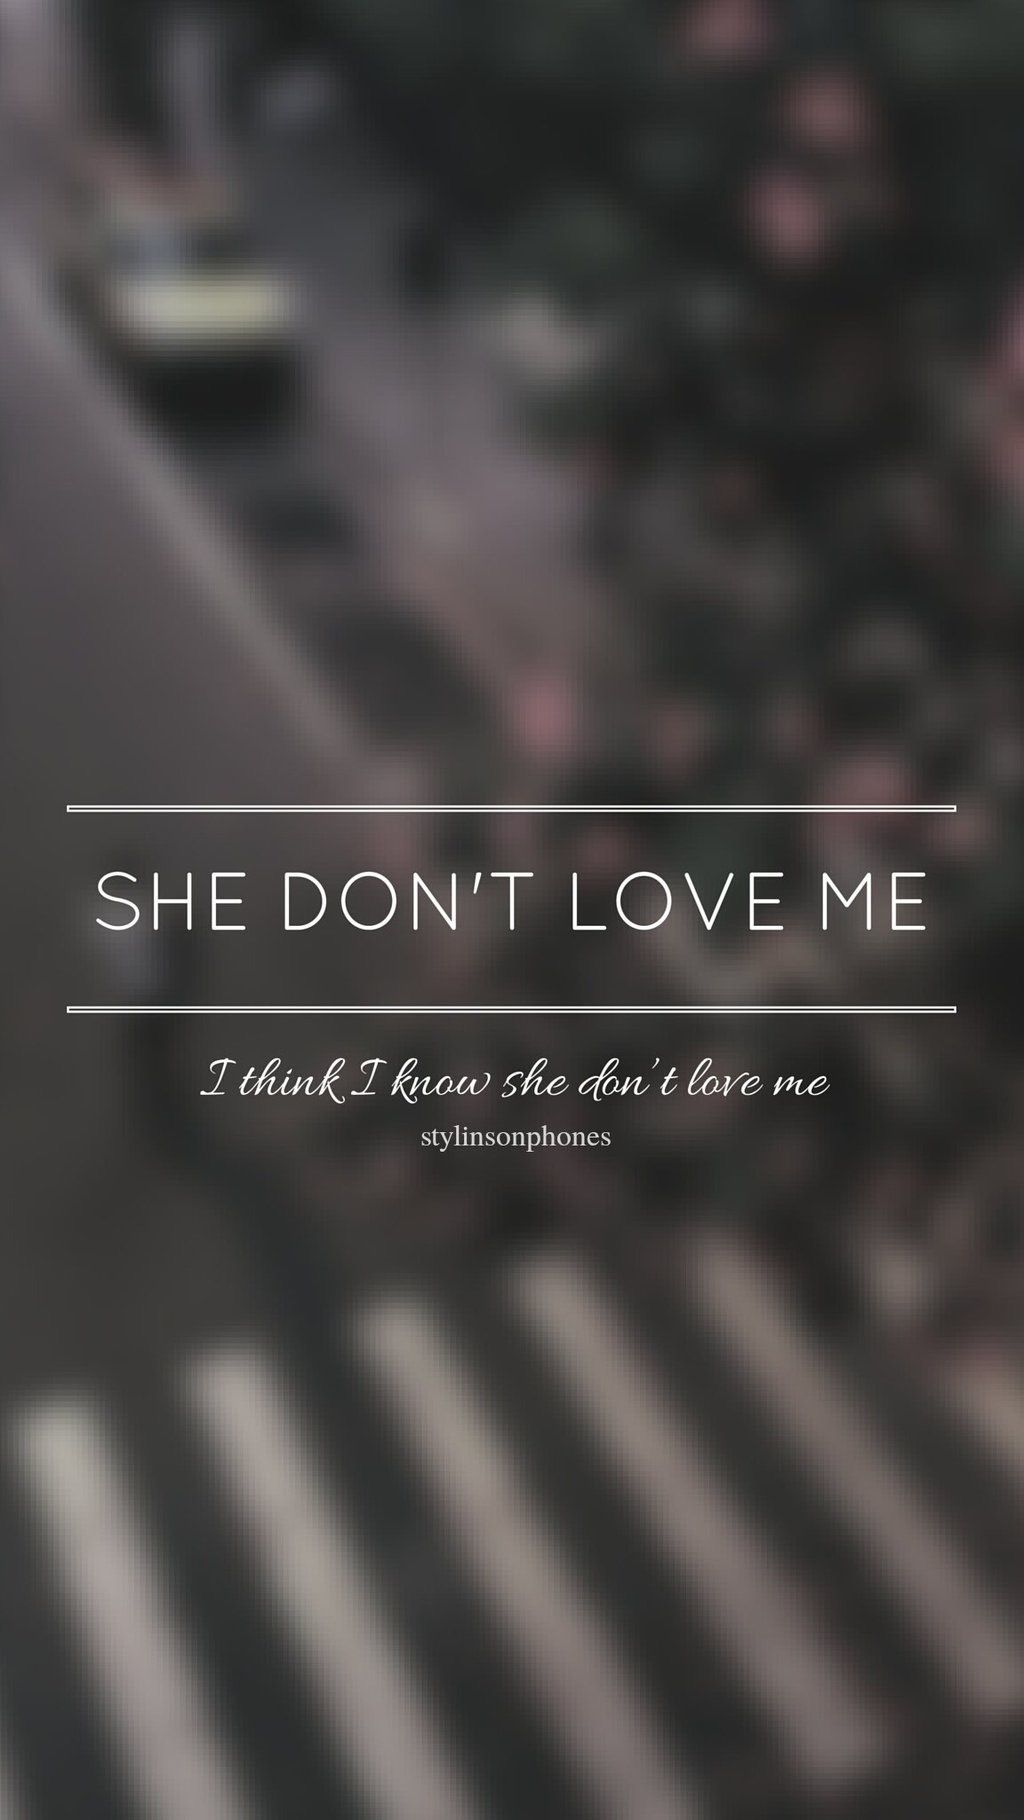 Me love don she t She doesn't